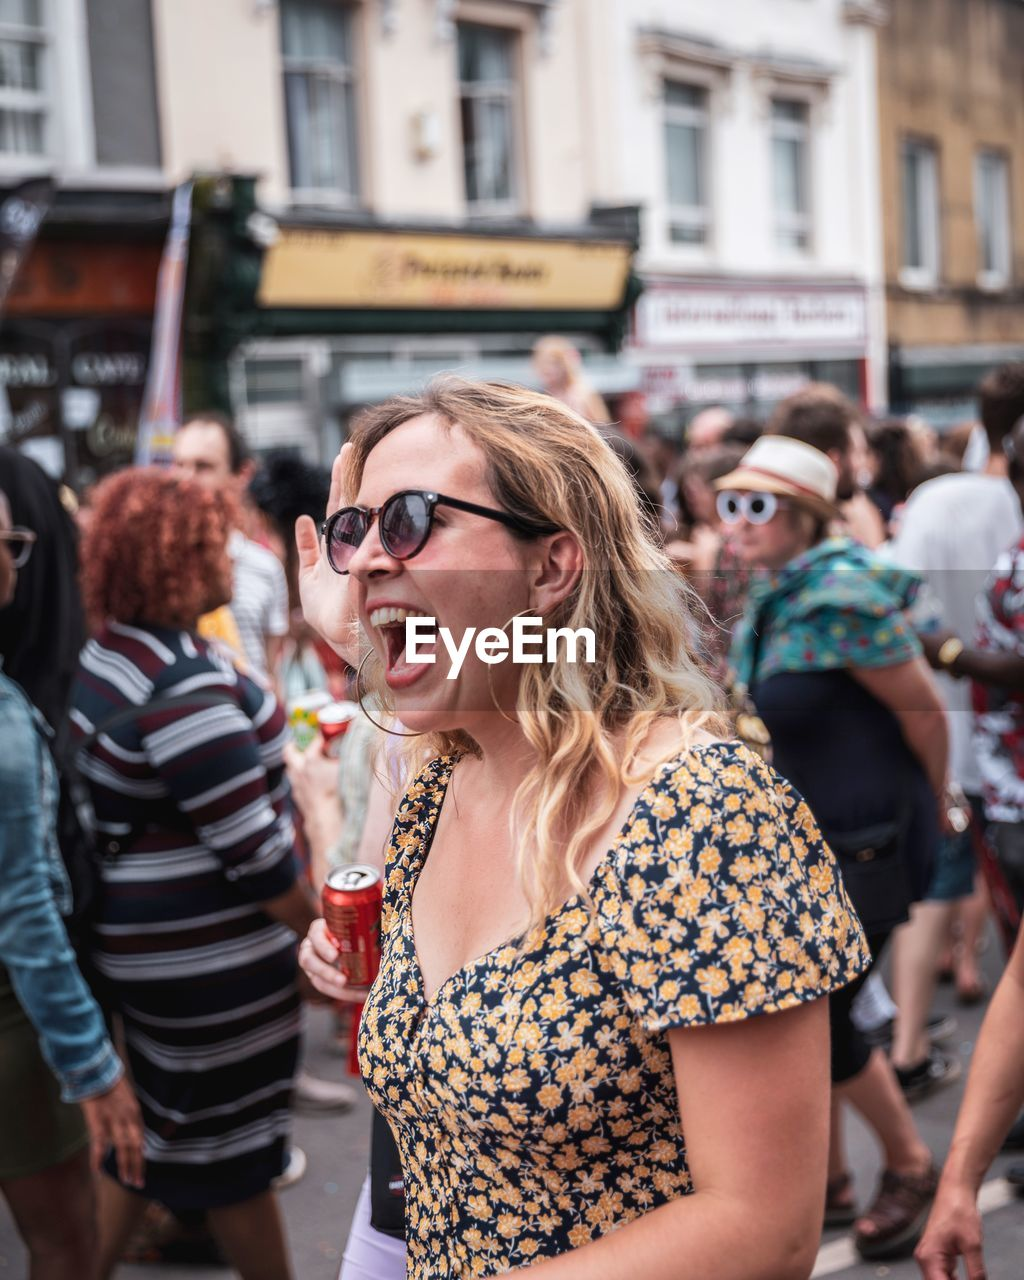 real people, lifestyles, young adult, leisure activity, glasses, focus on foreground, sunglasses, incidental people, people, adult, fashion, young women, group of people, event, women, city, mouth open, hairstyle, mouth, festival